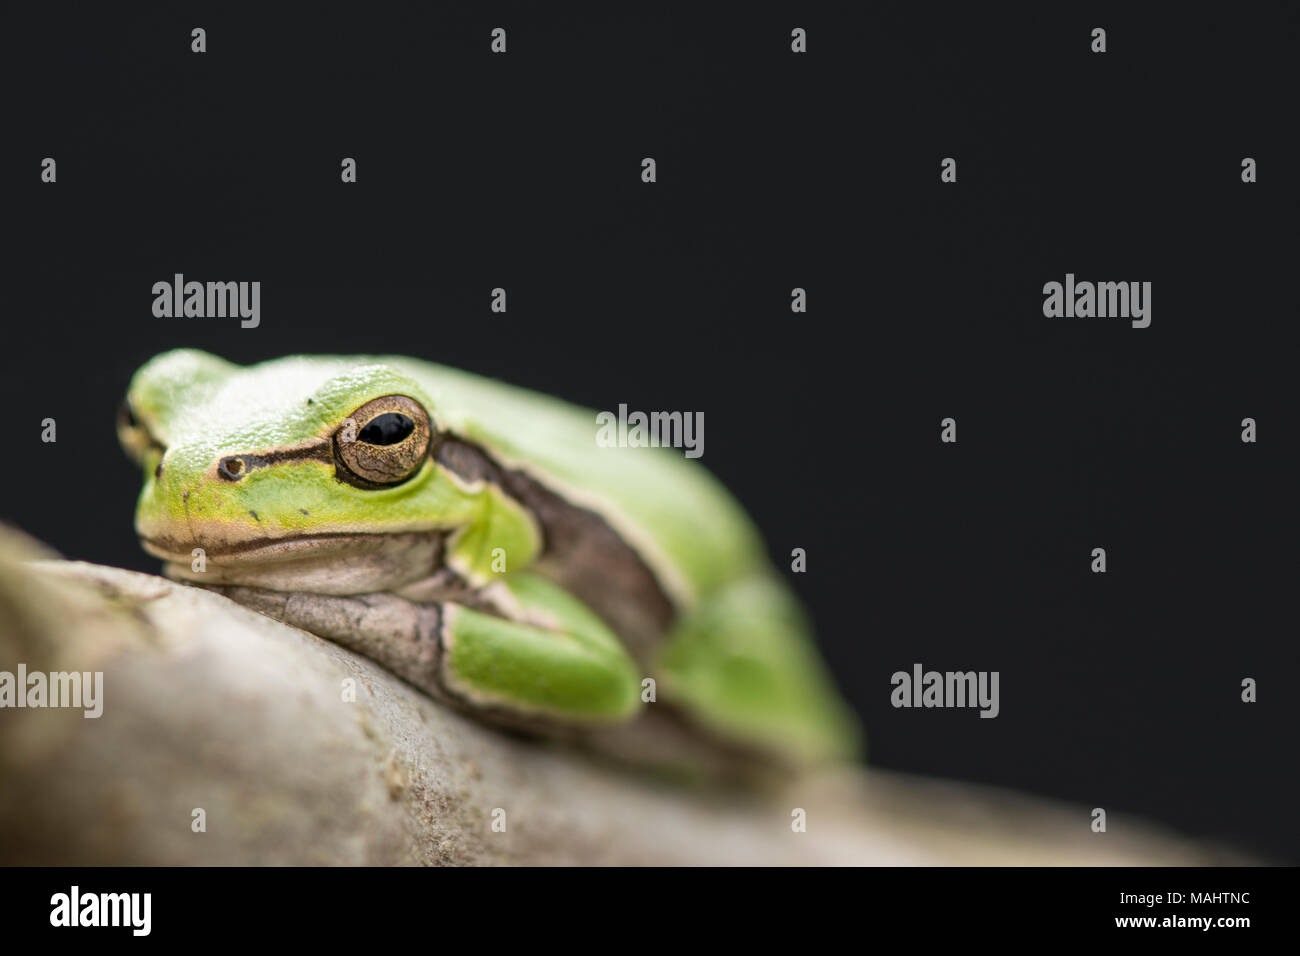 Tropical green tree frog on a branch in front of dark background. - Stock Image